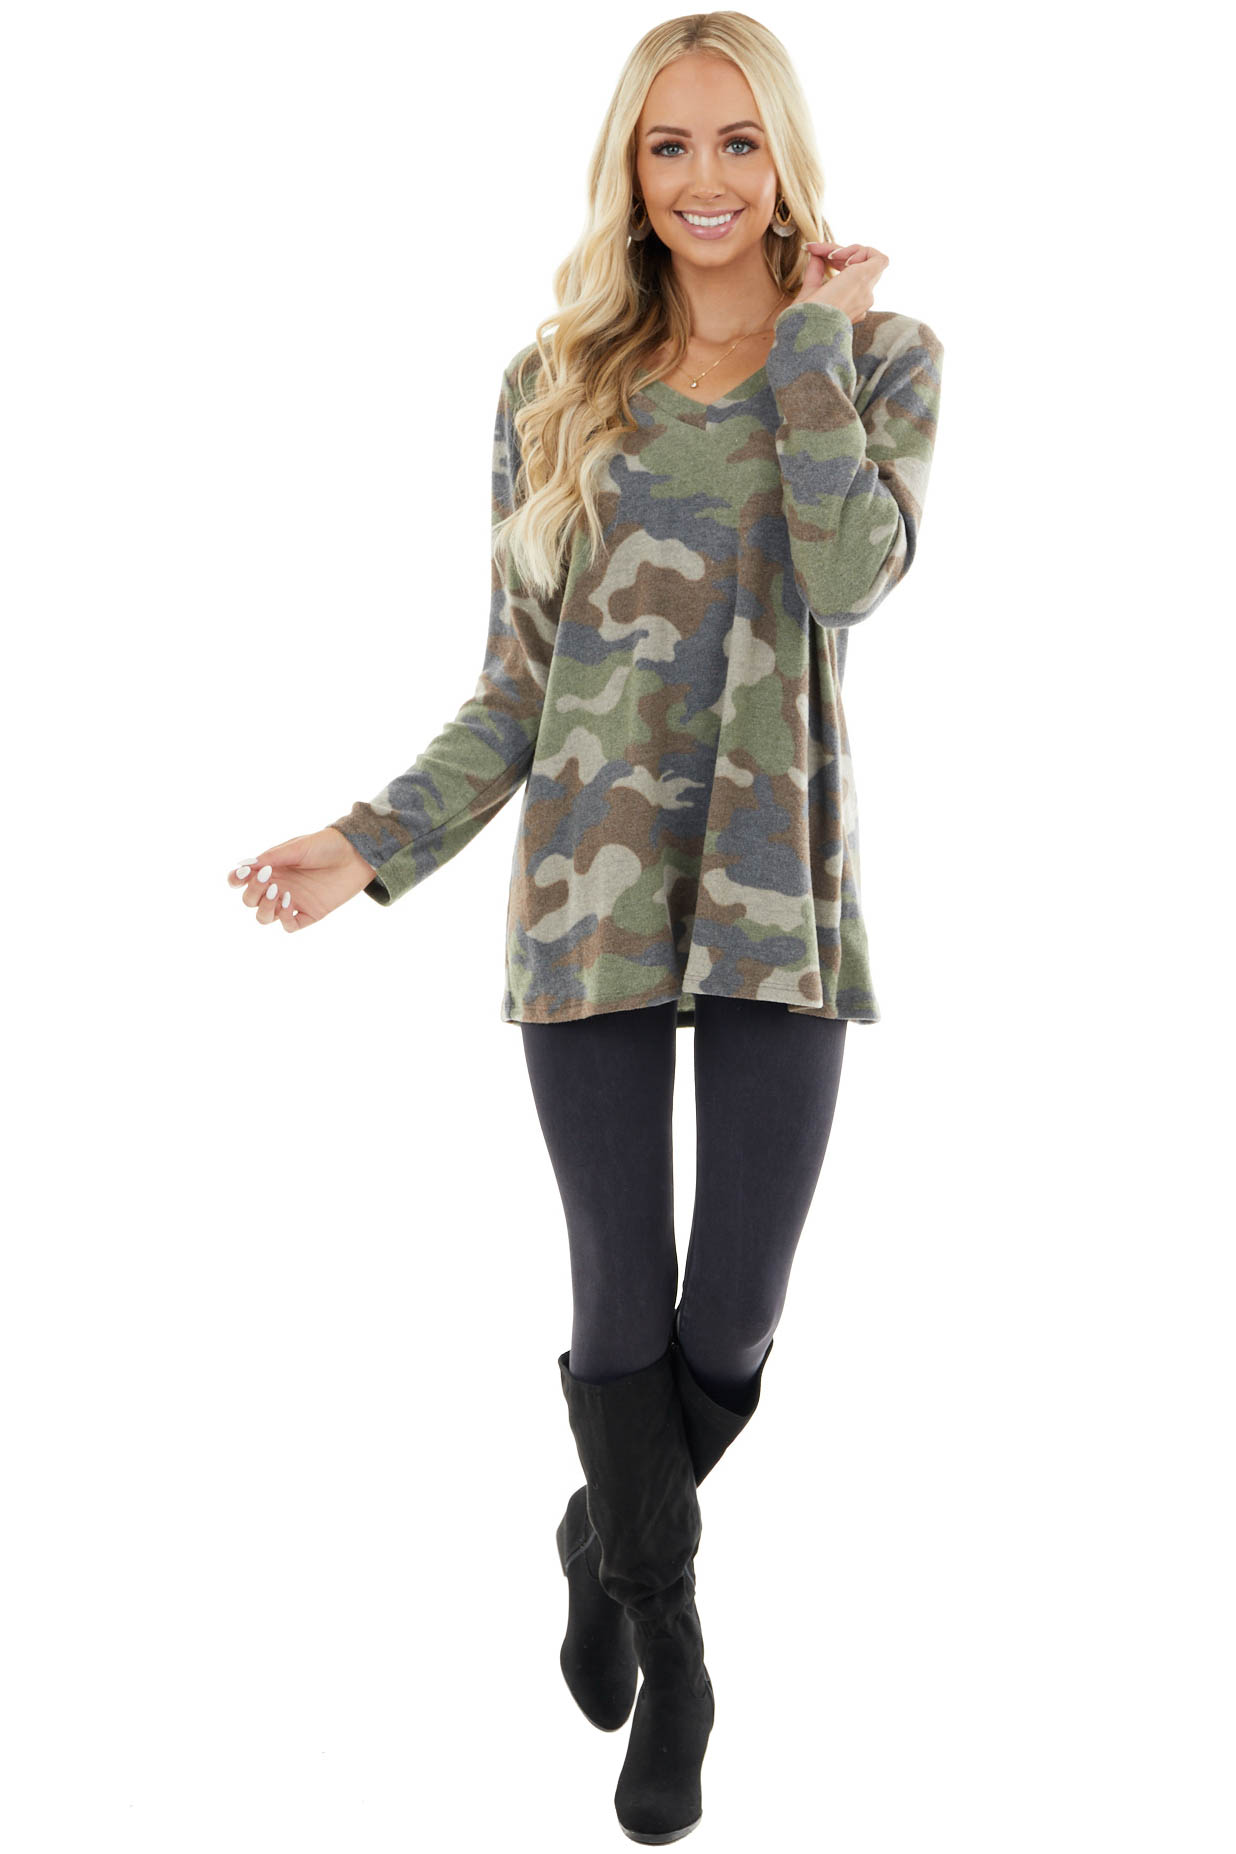 Olive Camo Fuzzy Knit Top with Long Sleeves